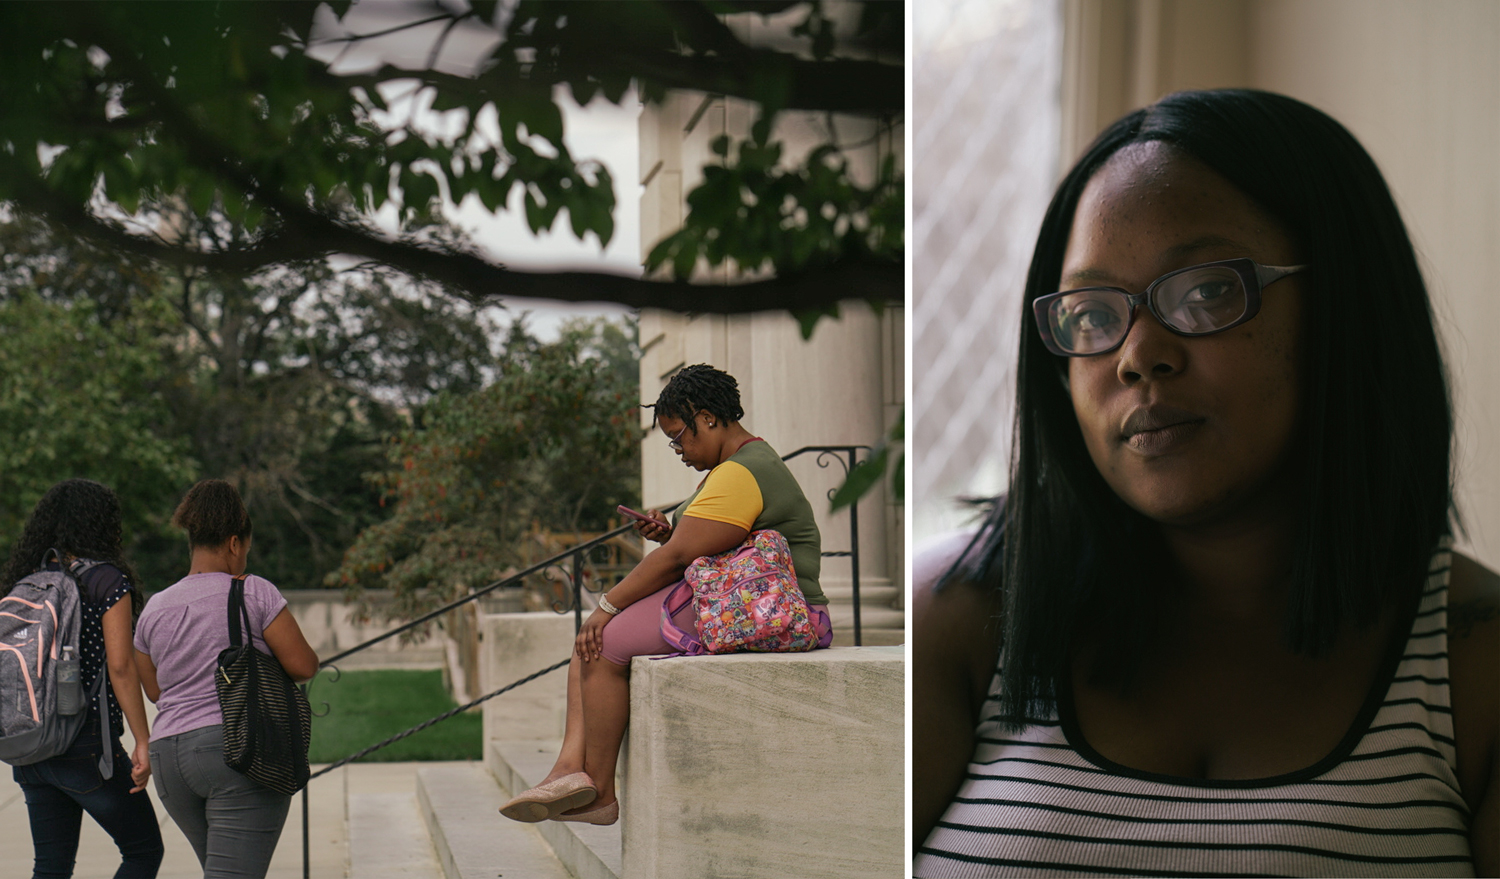 """I try notto go off when people talk negatively about the homeless,"" Bre said.""I always tell people, you never know. Be grateful for what you have because you never know. It could be gone like that."""